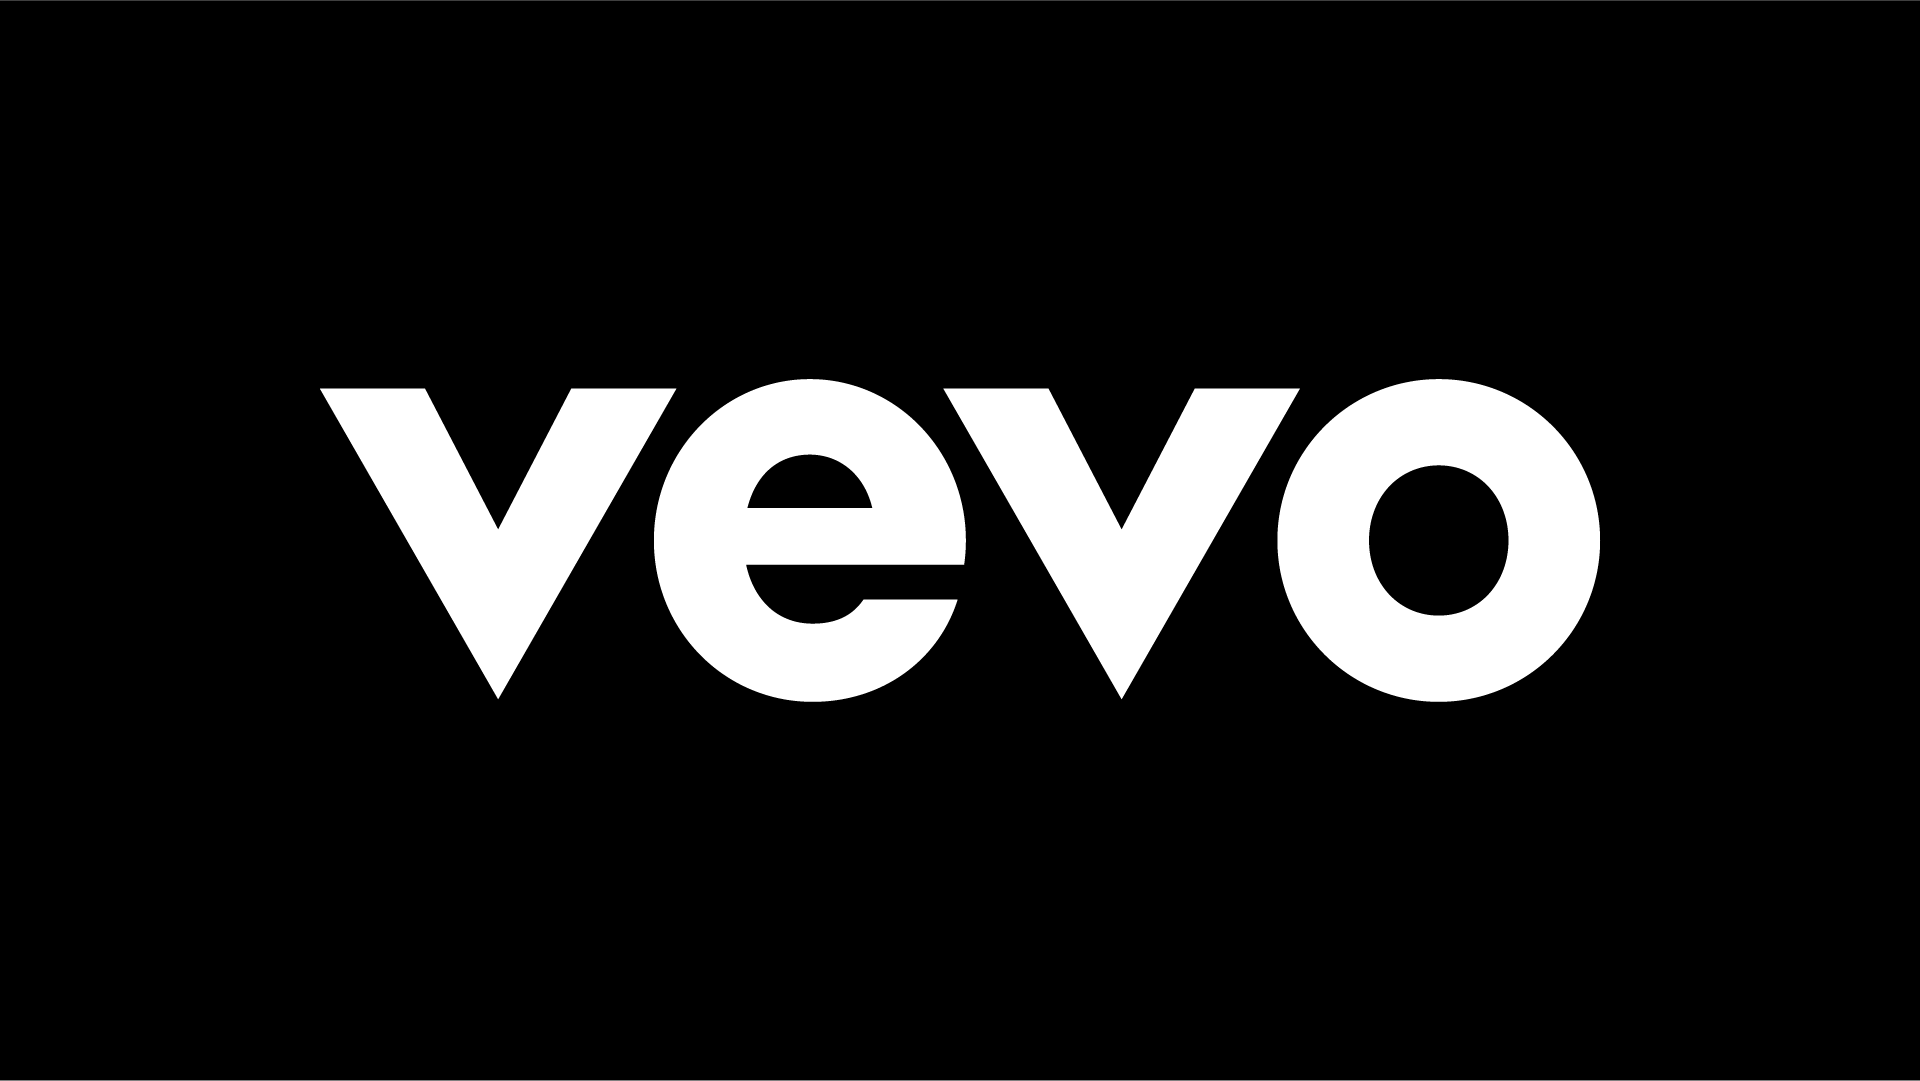 Vevo realizes YouTube music videos are its forte, plans to shut down